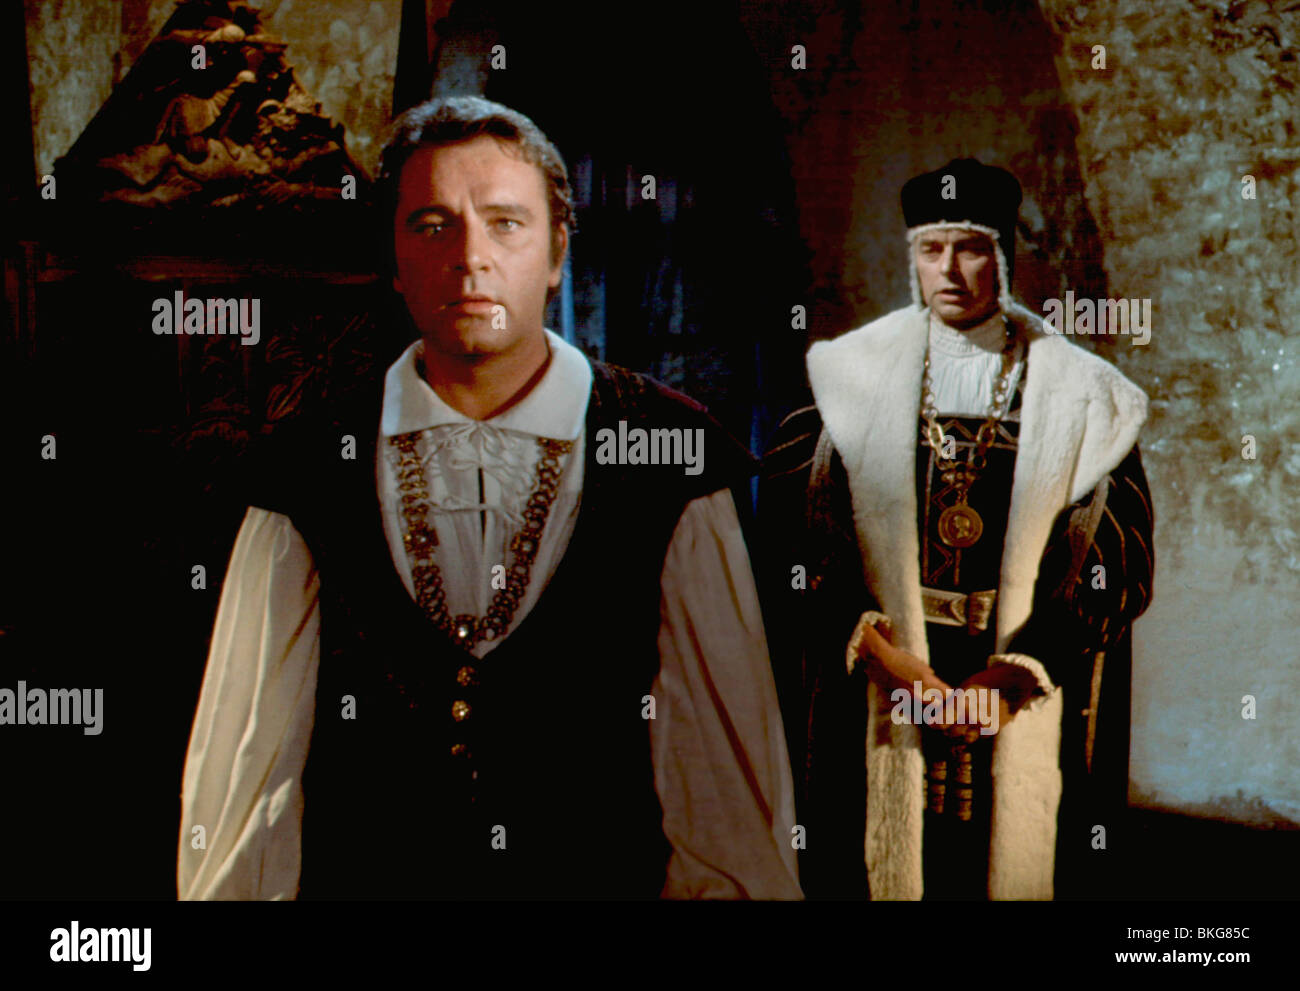 DOCTOR FAUSTUS (1967) RICHARD BURTON DFST 003 - Stock Image